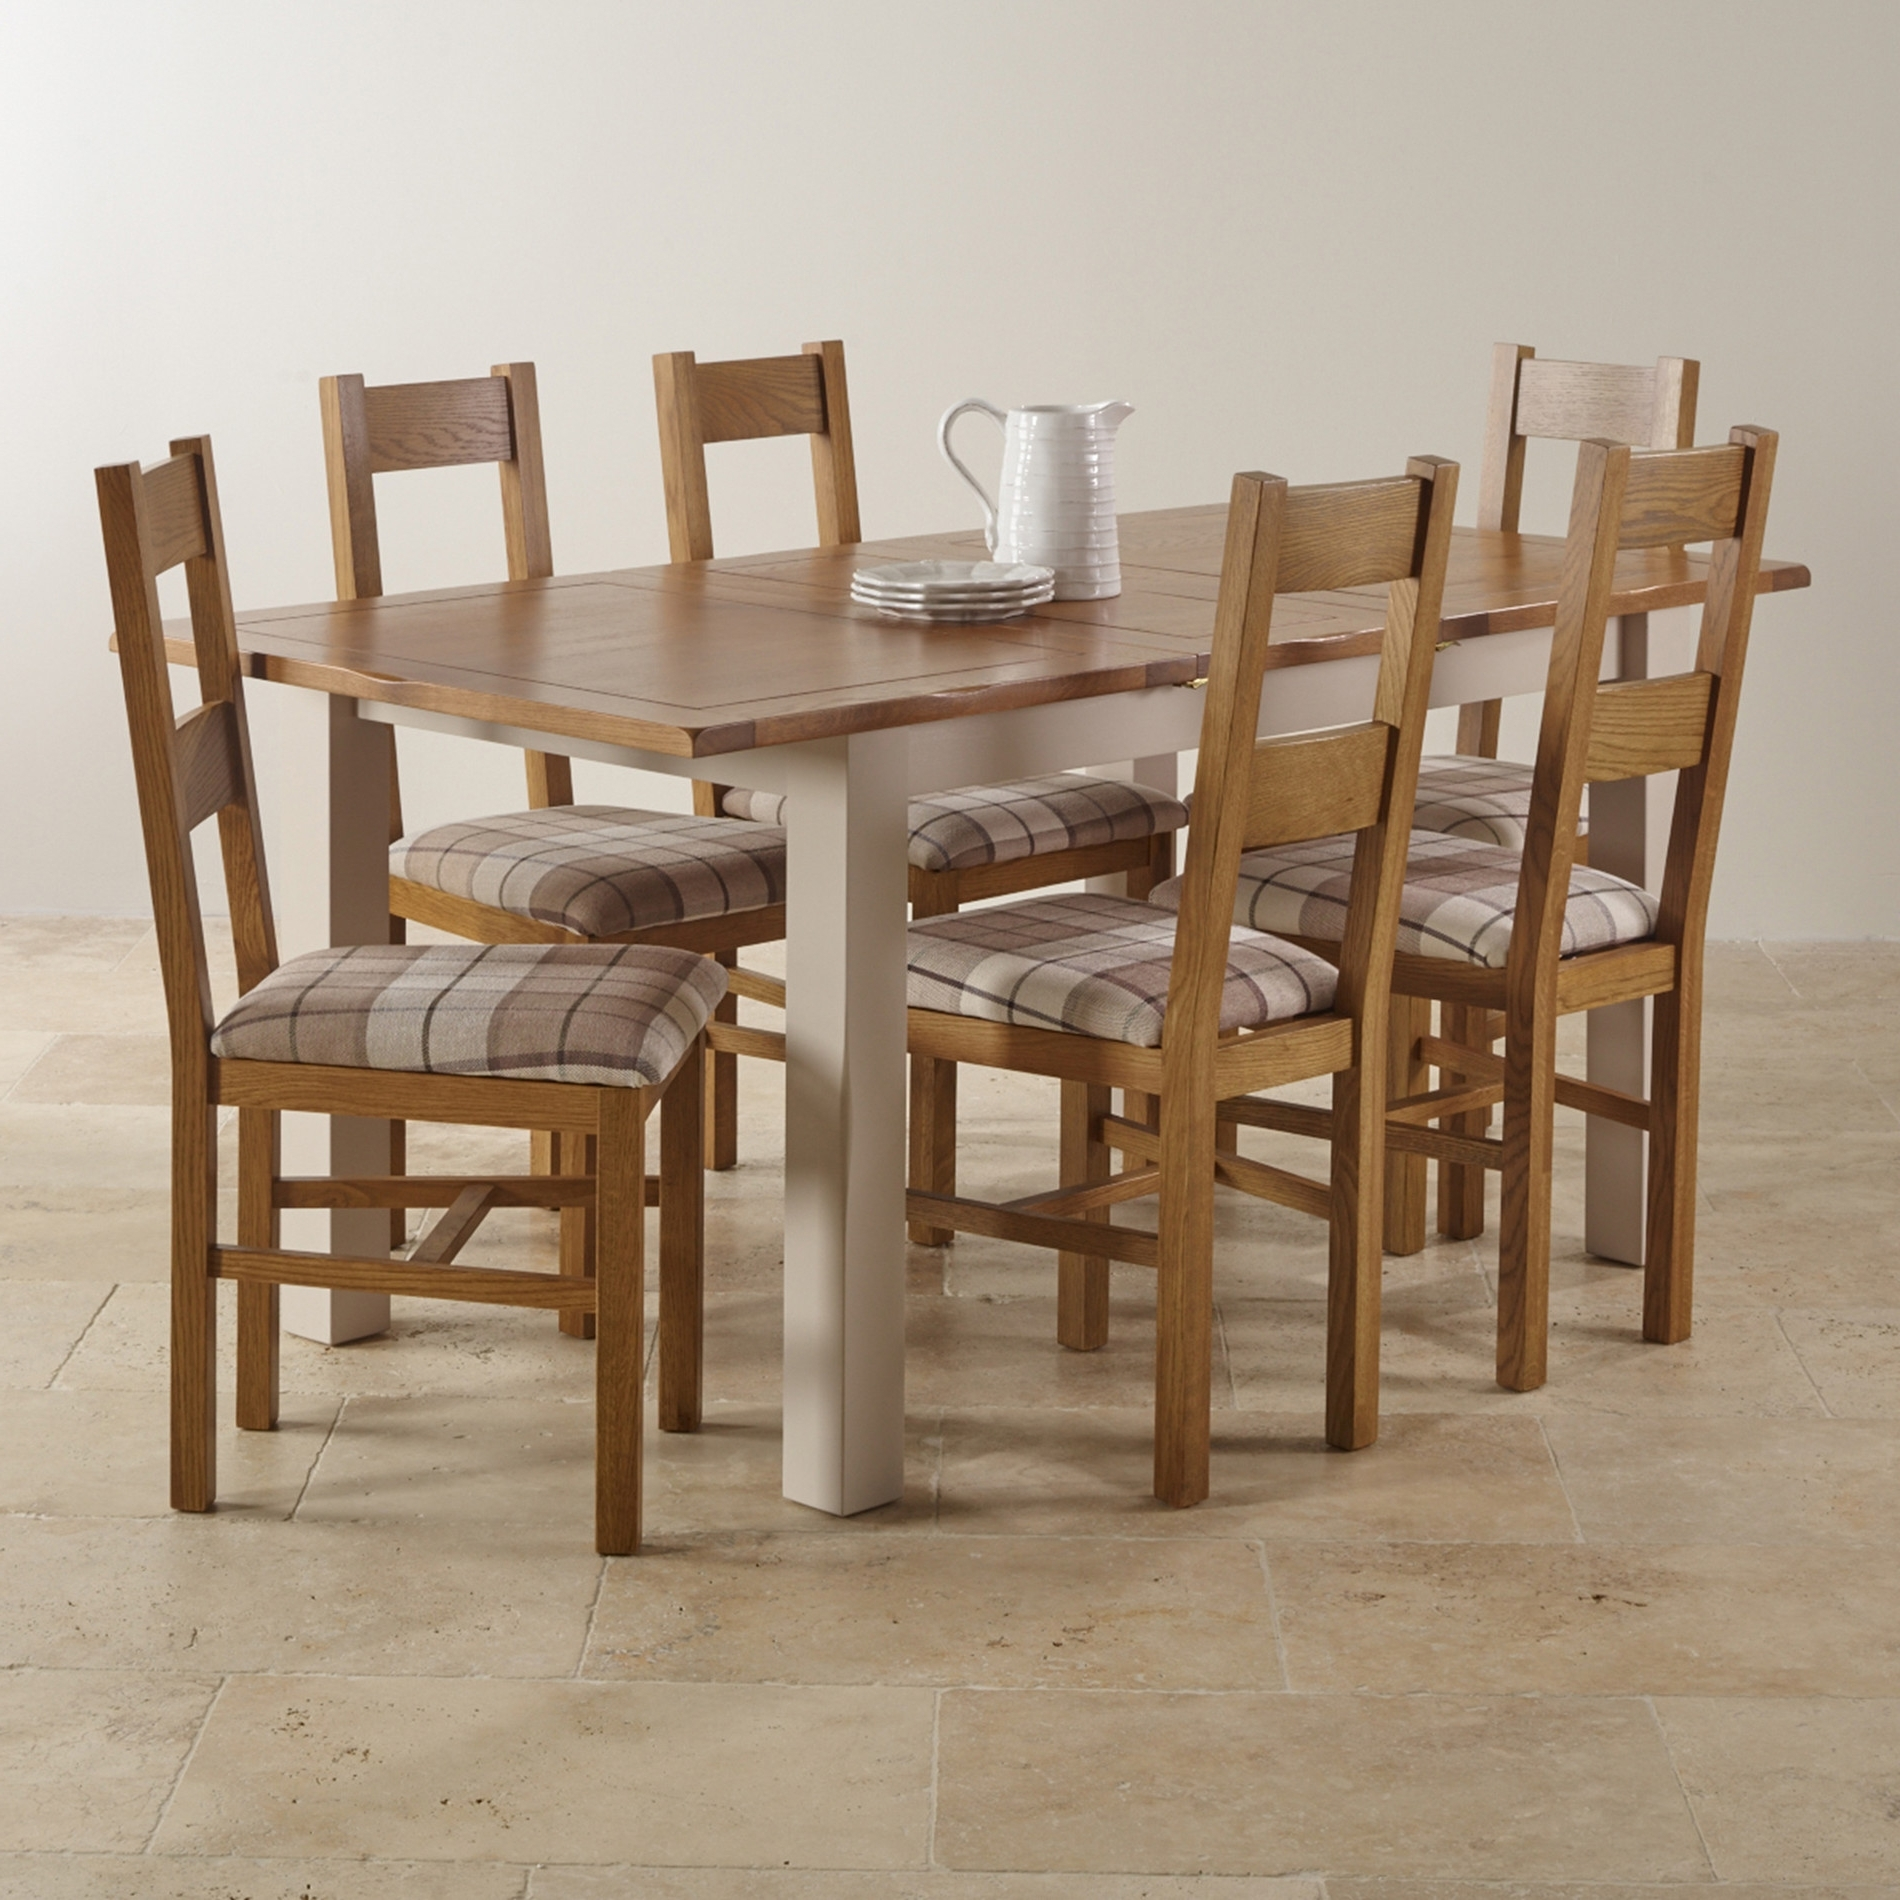 Extending Oak Dining Tables And Chairs Inside 2018 Large Glass Set Grey Seats Gold Rattan Folding Small Room Chairs (View 11 of 25)